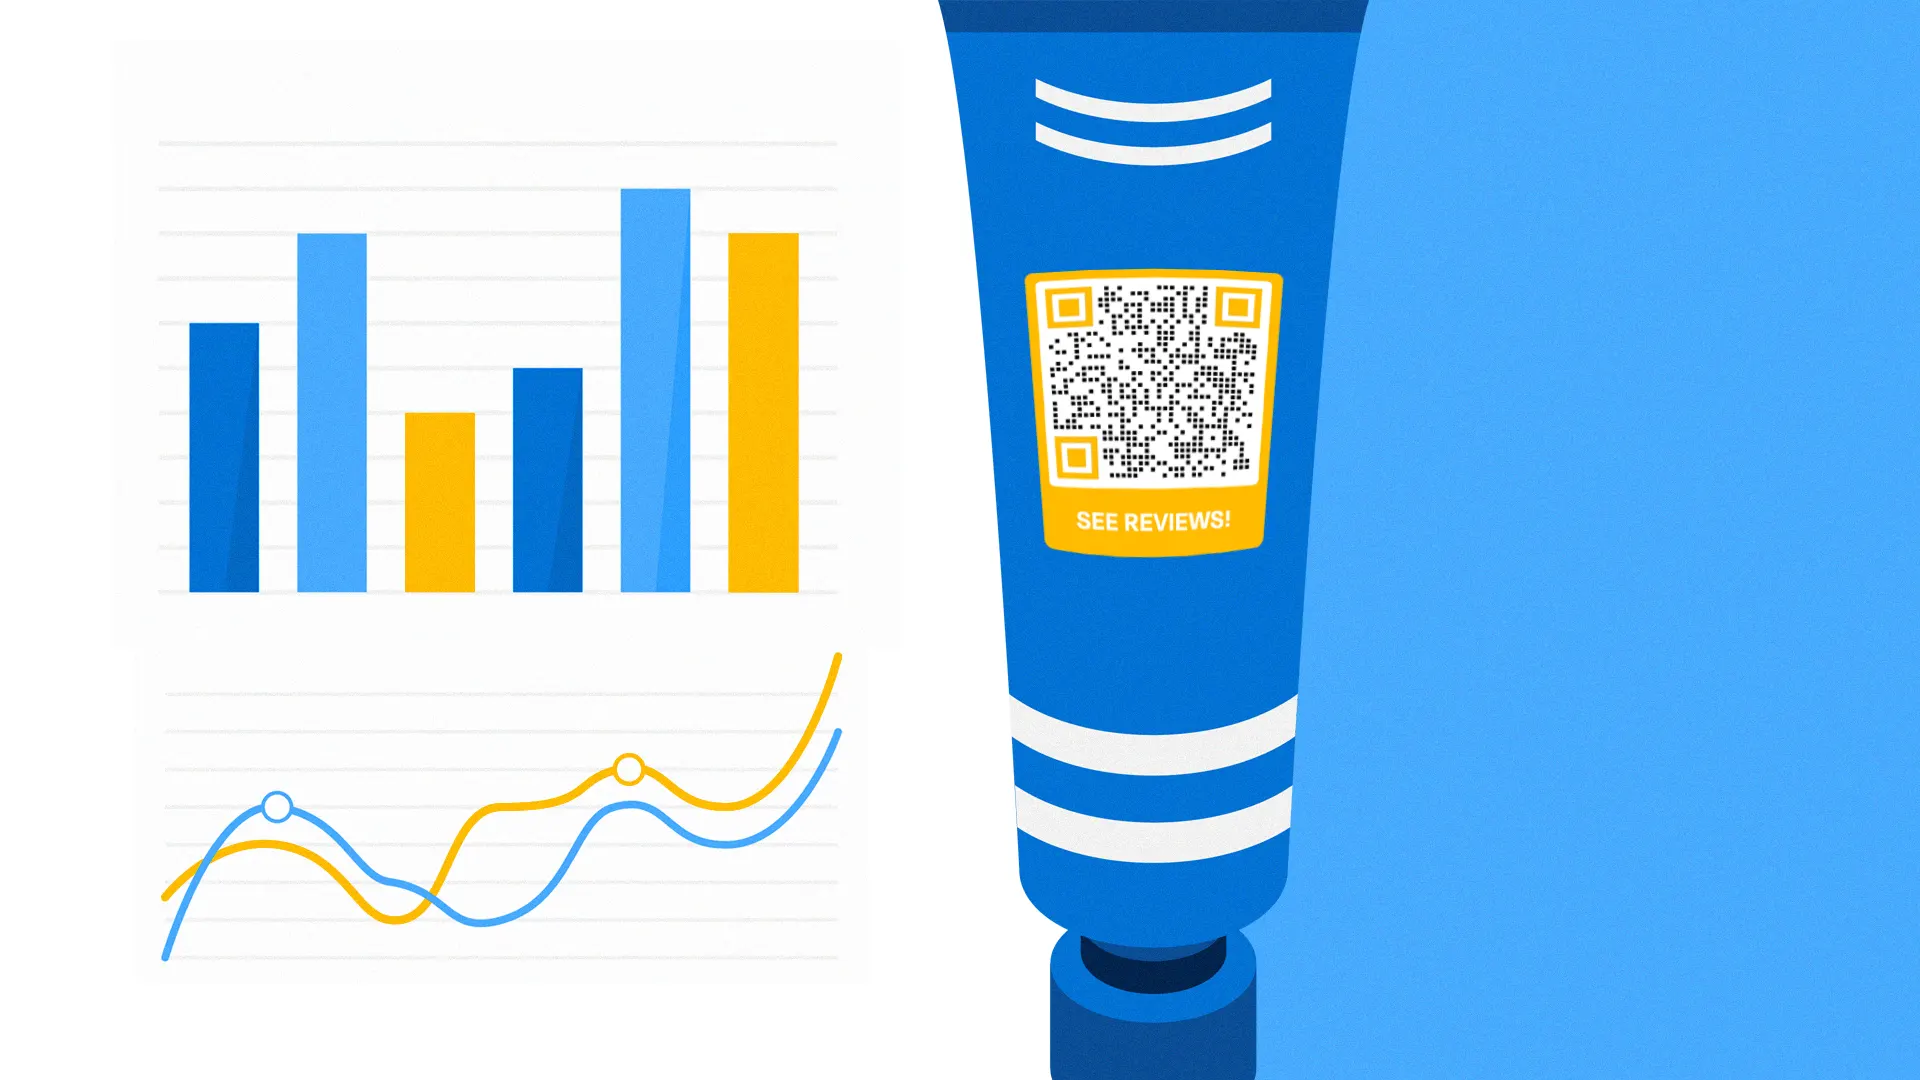 visual qr codes for customer insights